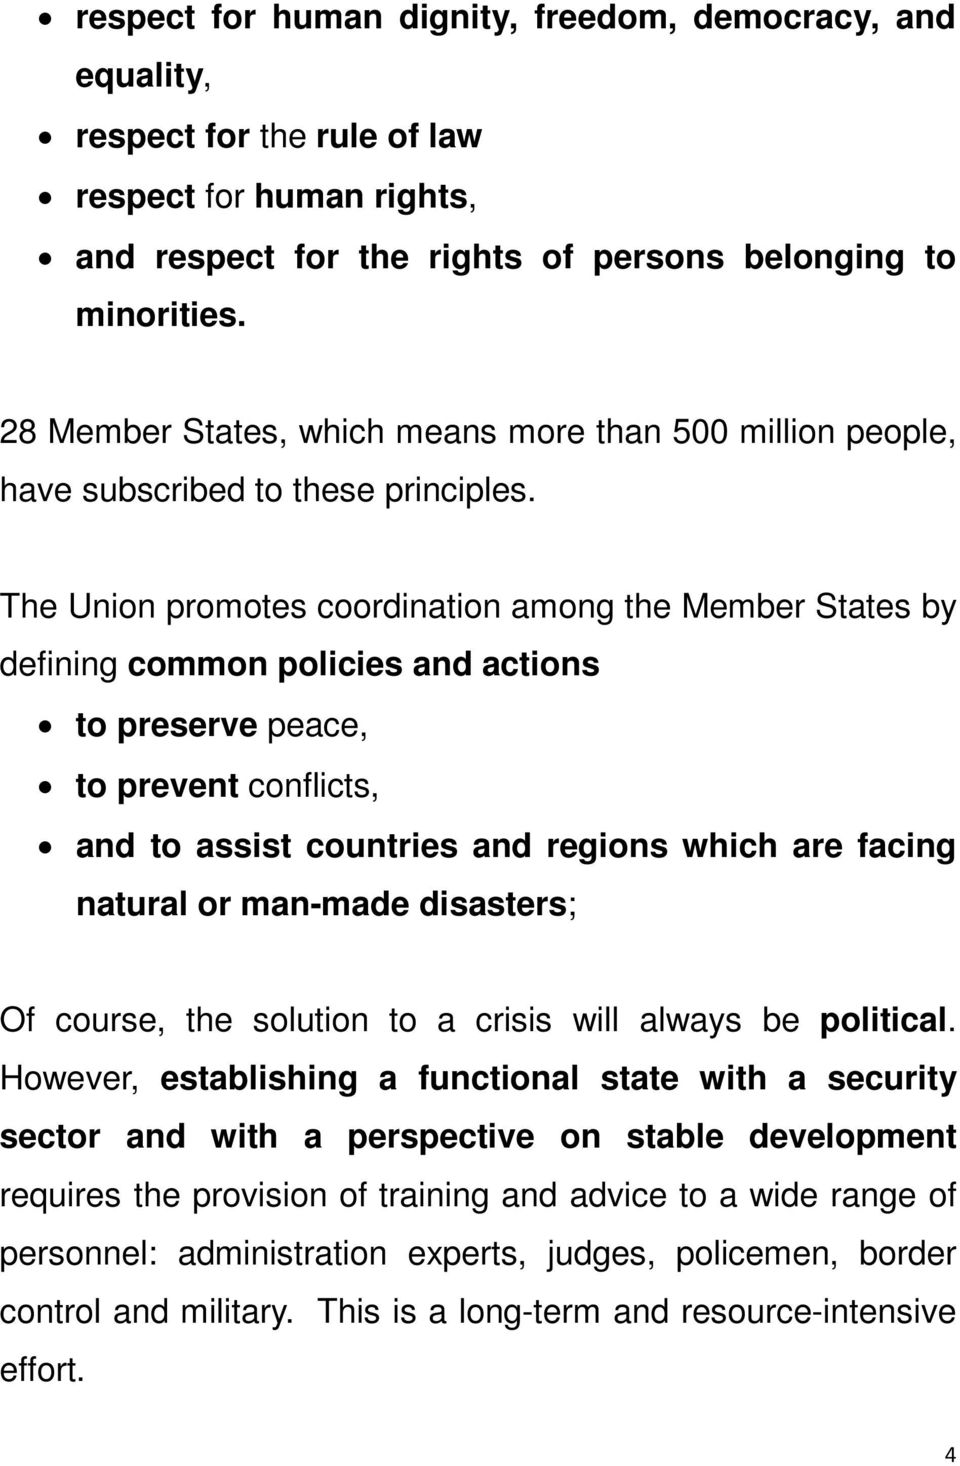 The Union promotes coordination among the Member States by defining common policies and actions to preserve peace, to prevent conflicts, and to assist countries and regions which are facing natural